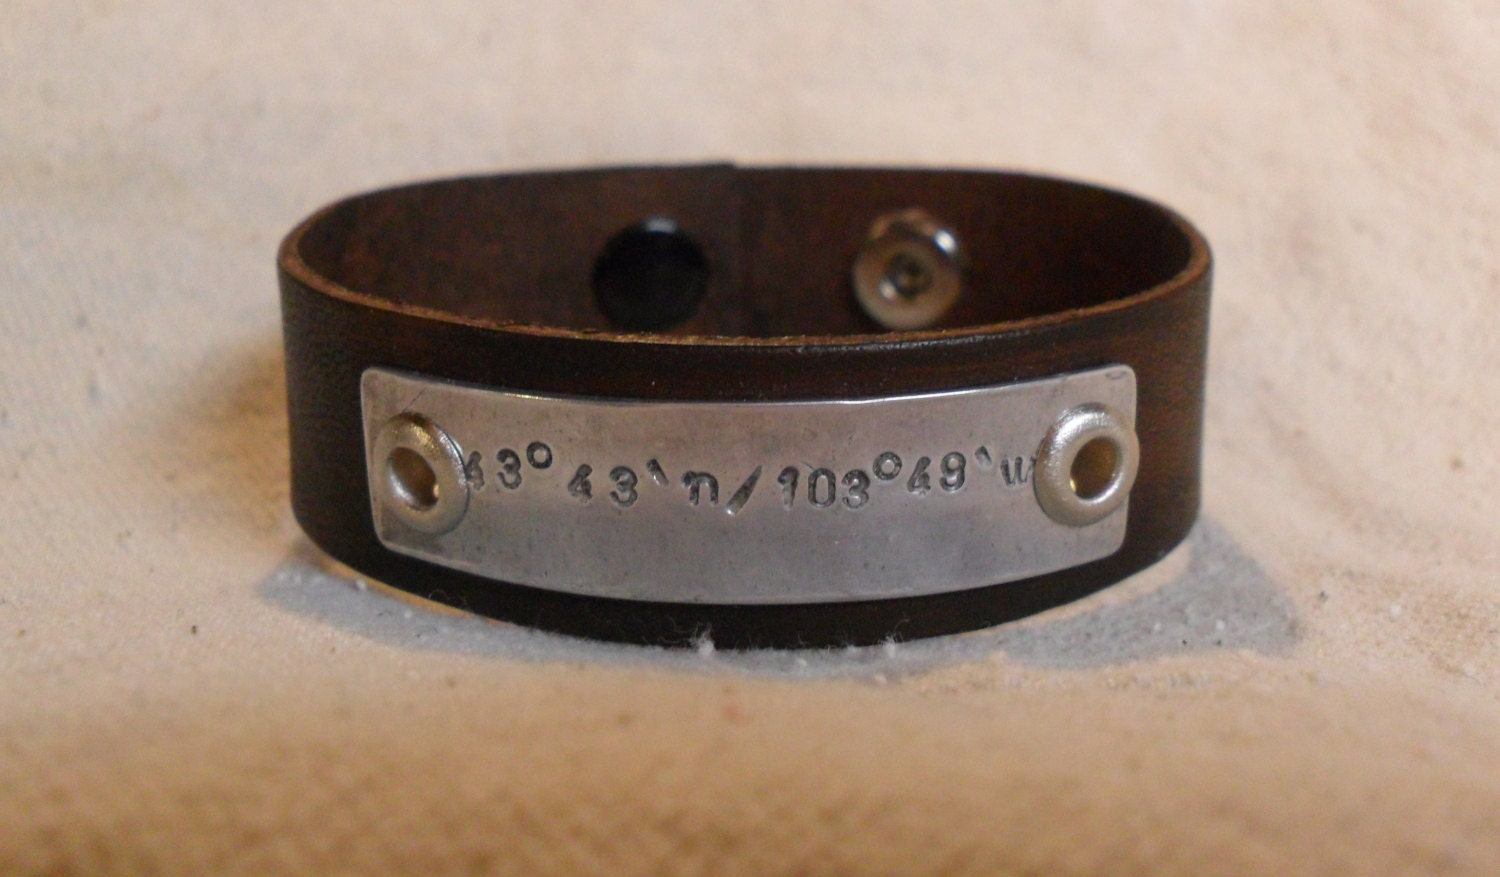 Men's Leather Bracelet Longitude Latitude Custom GPS Coordinates Bracelet